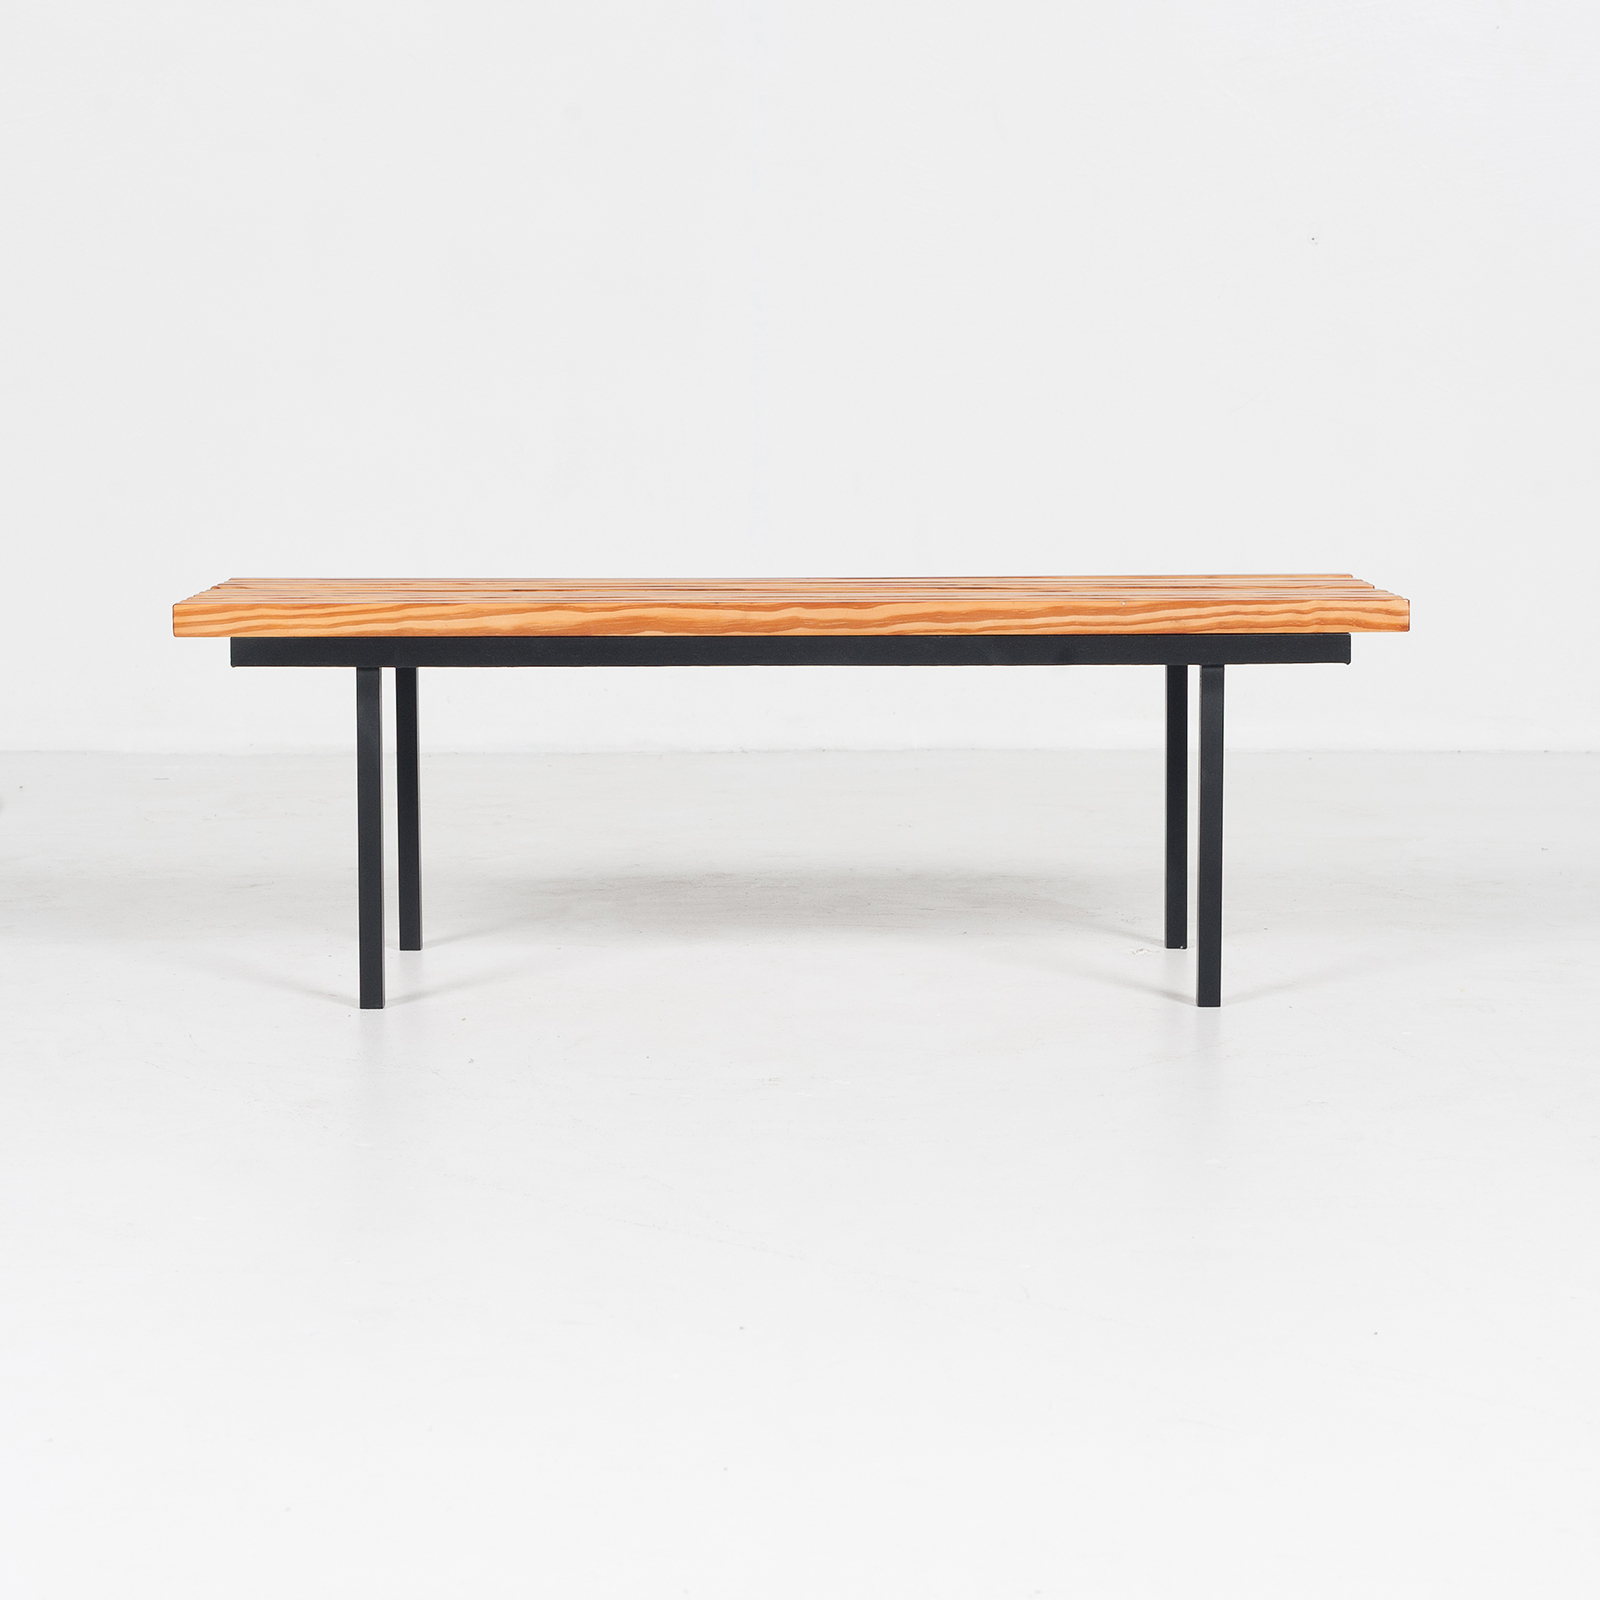 Bench In Pine And Steel, 1950s, The Netherlands 07